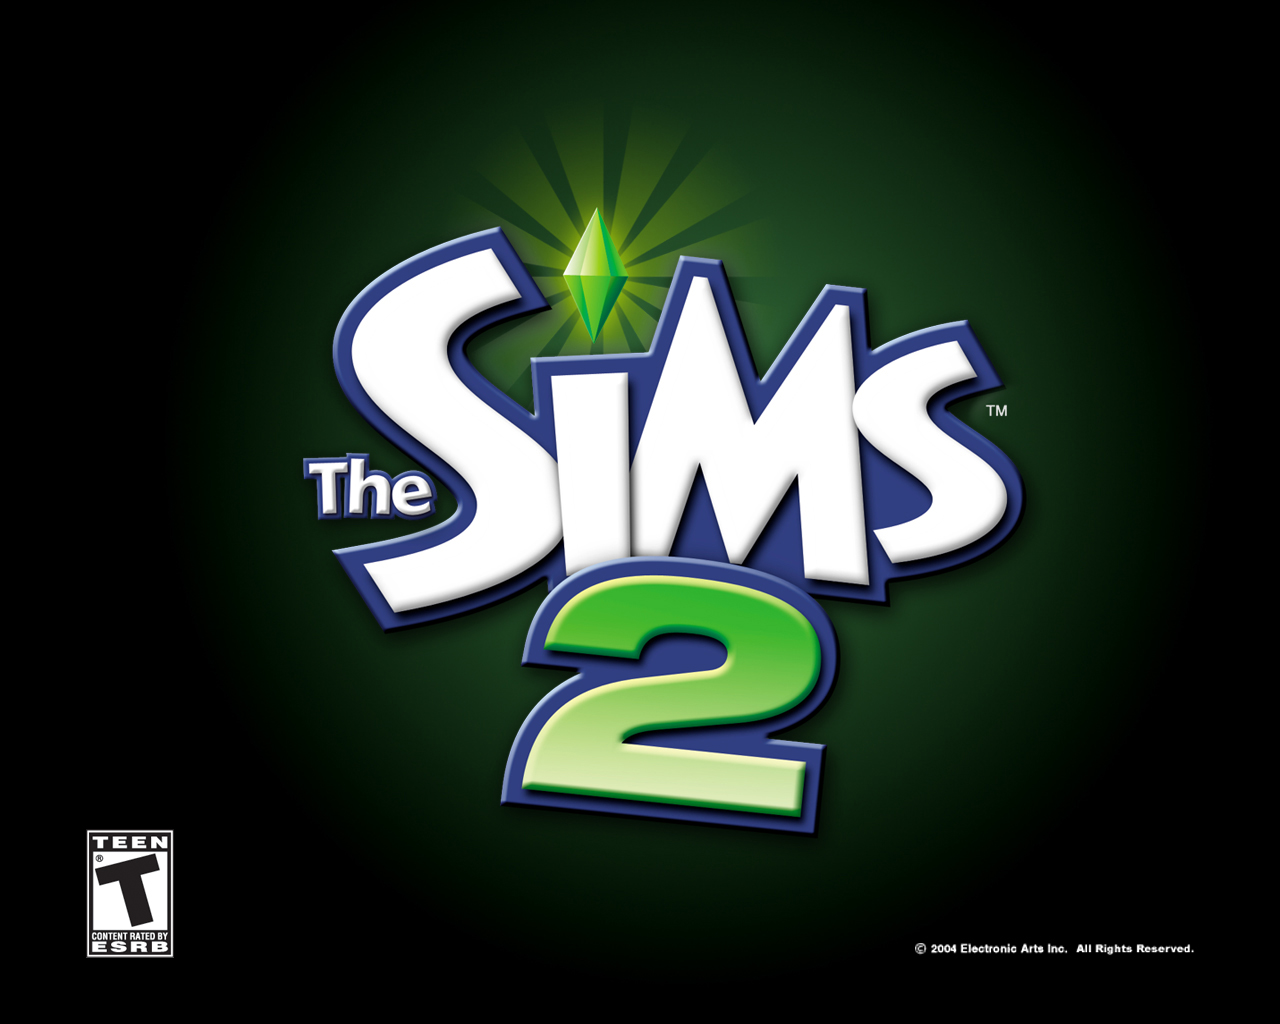 The Sims 2 Wallpapers